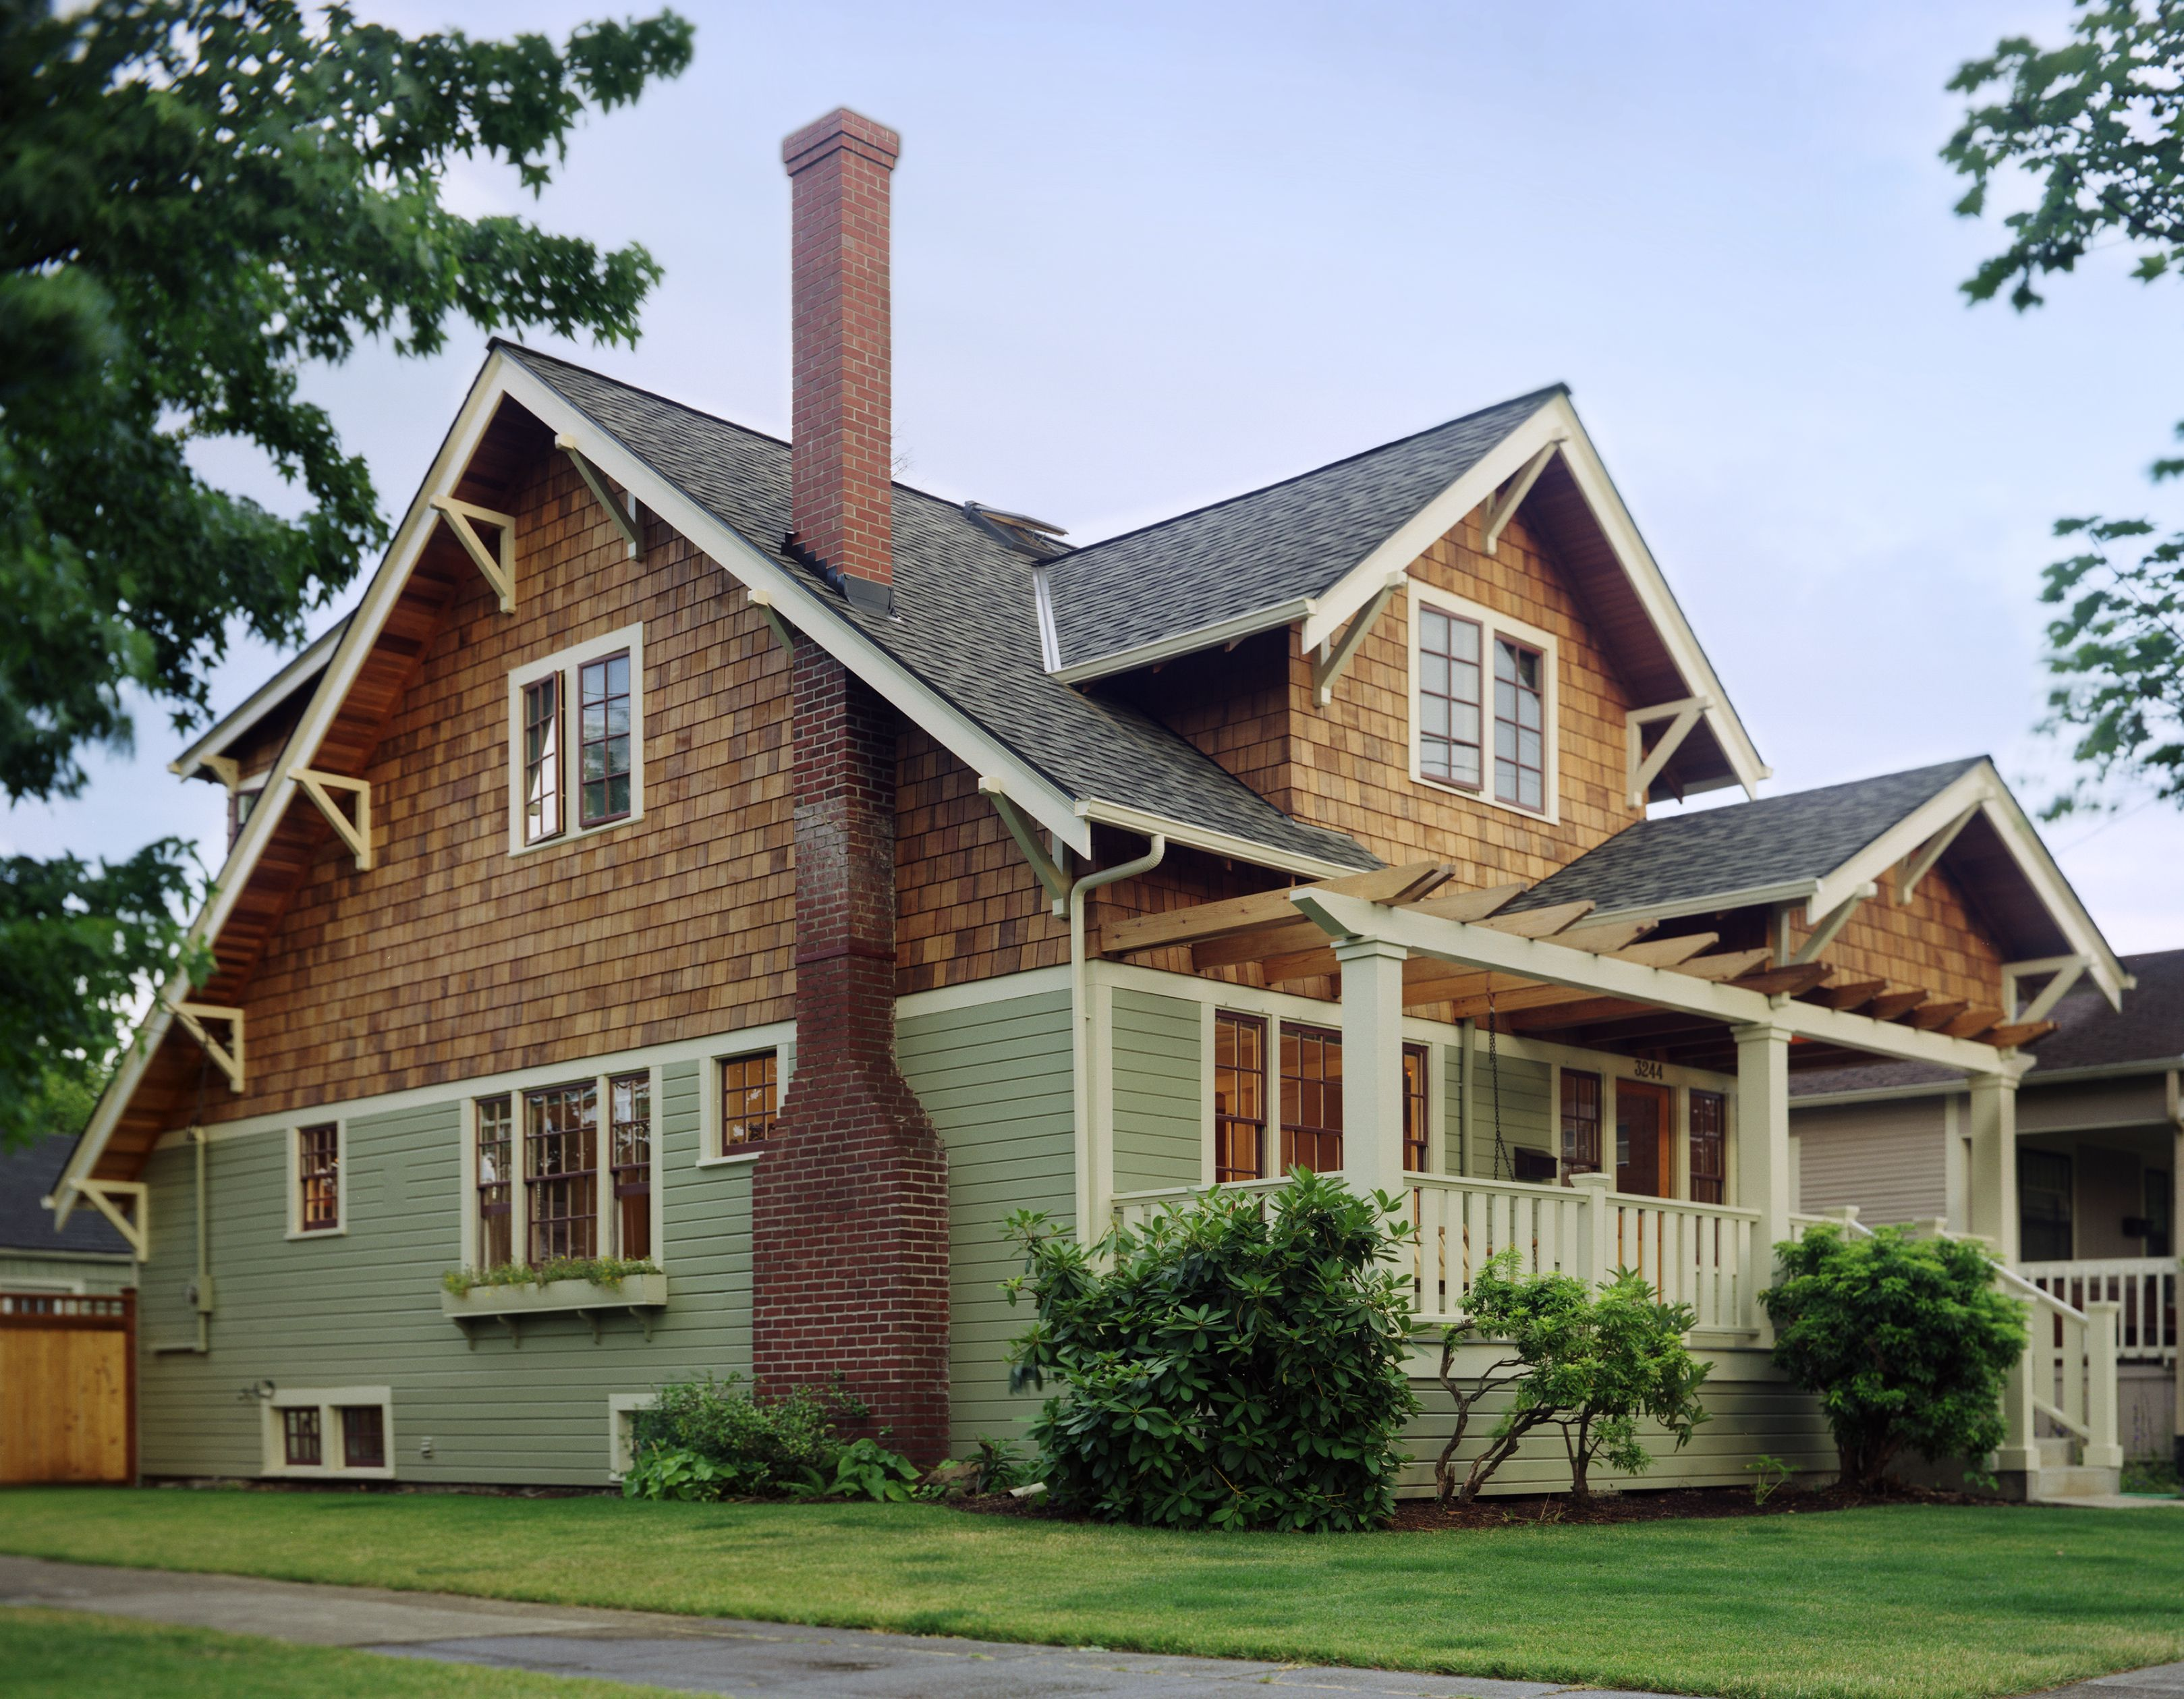 Pacific northwest architecture craftsman style house not for Shaker style home plans